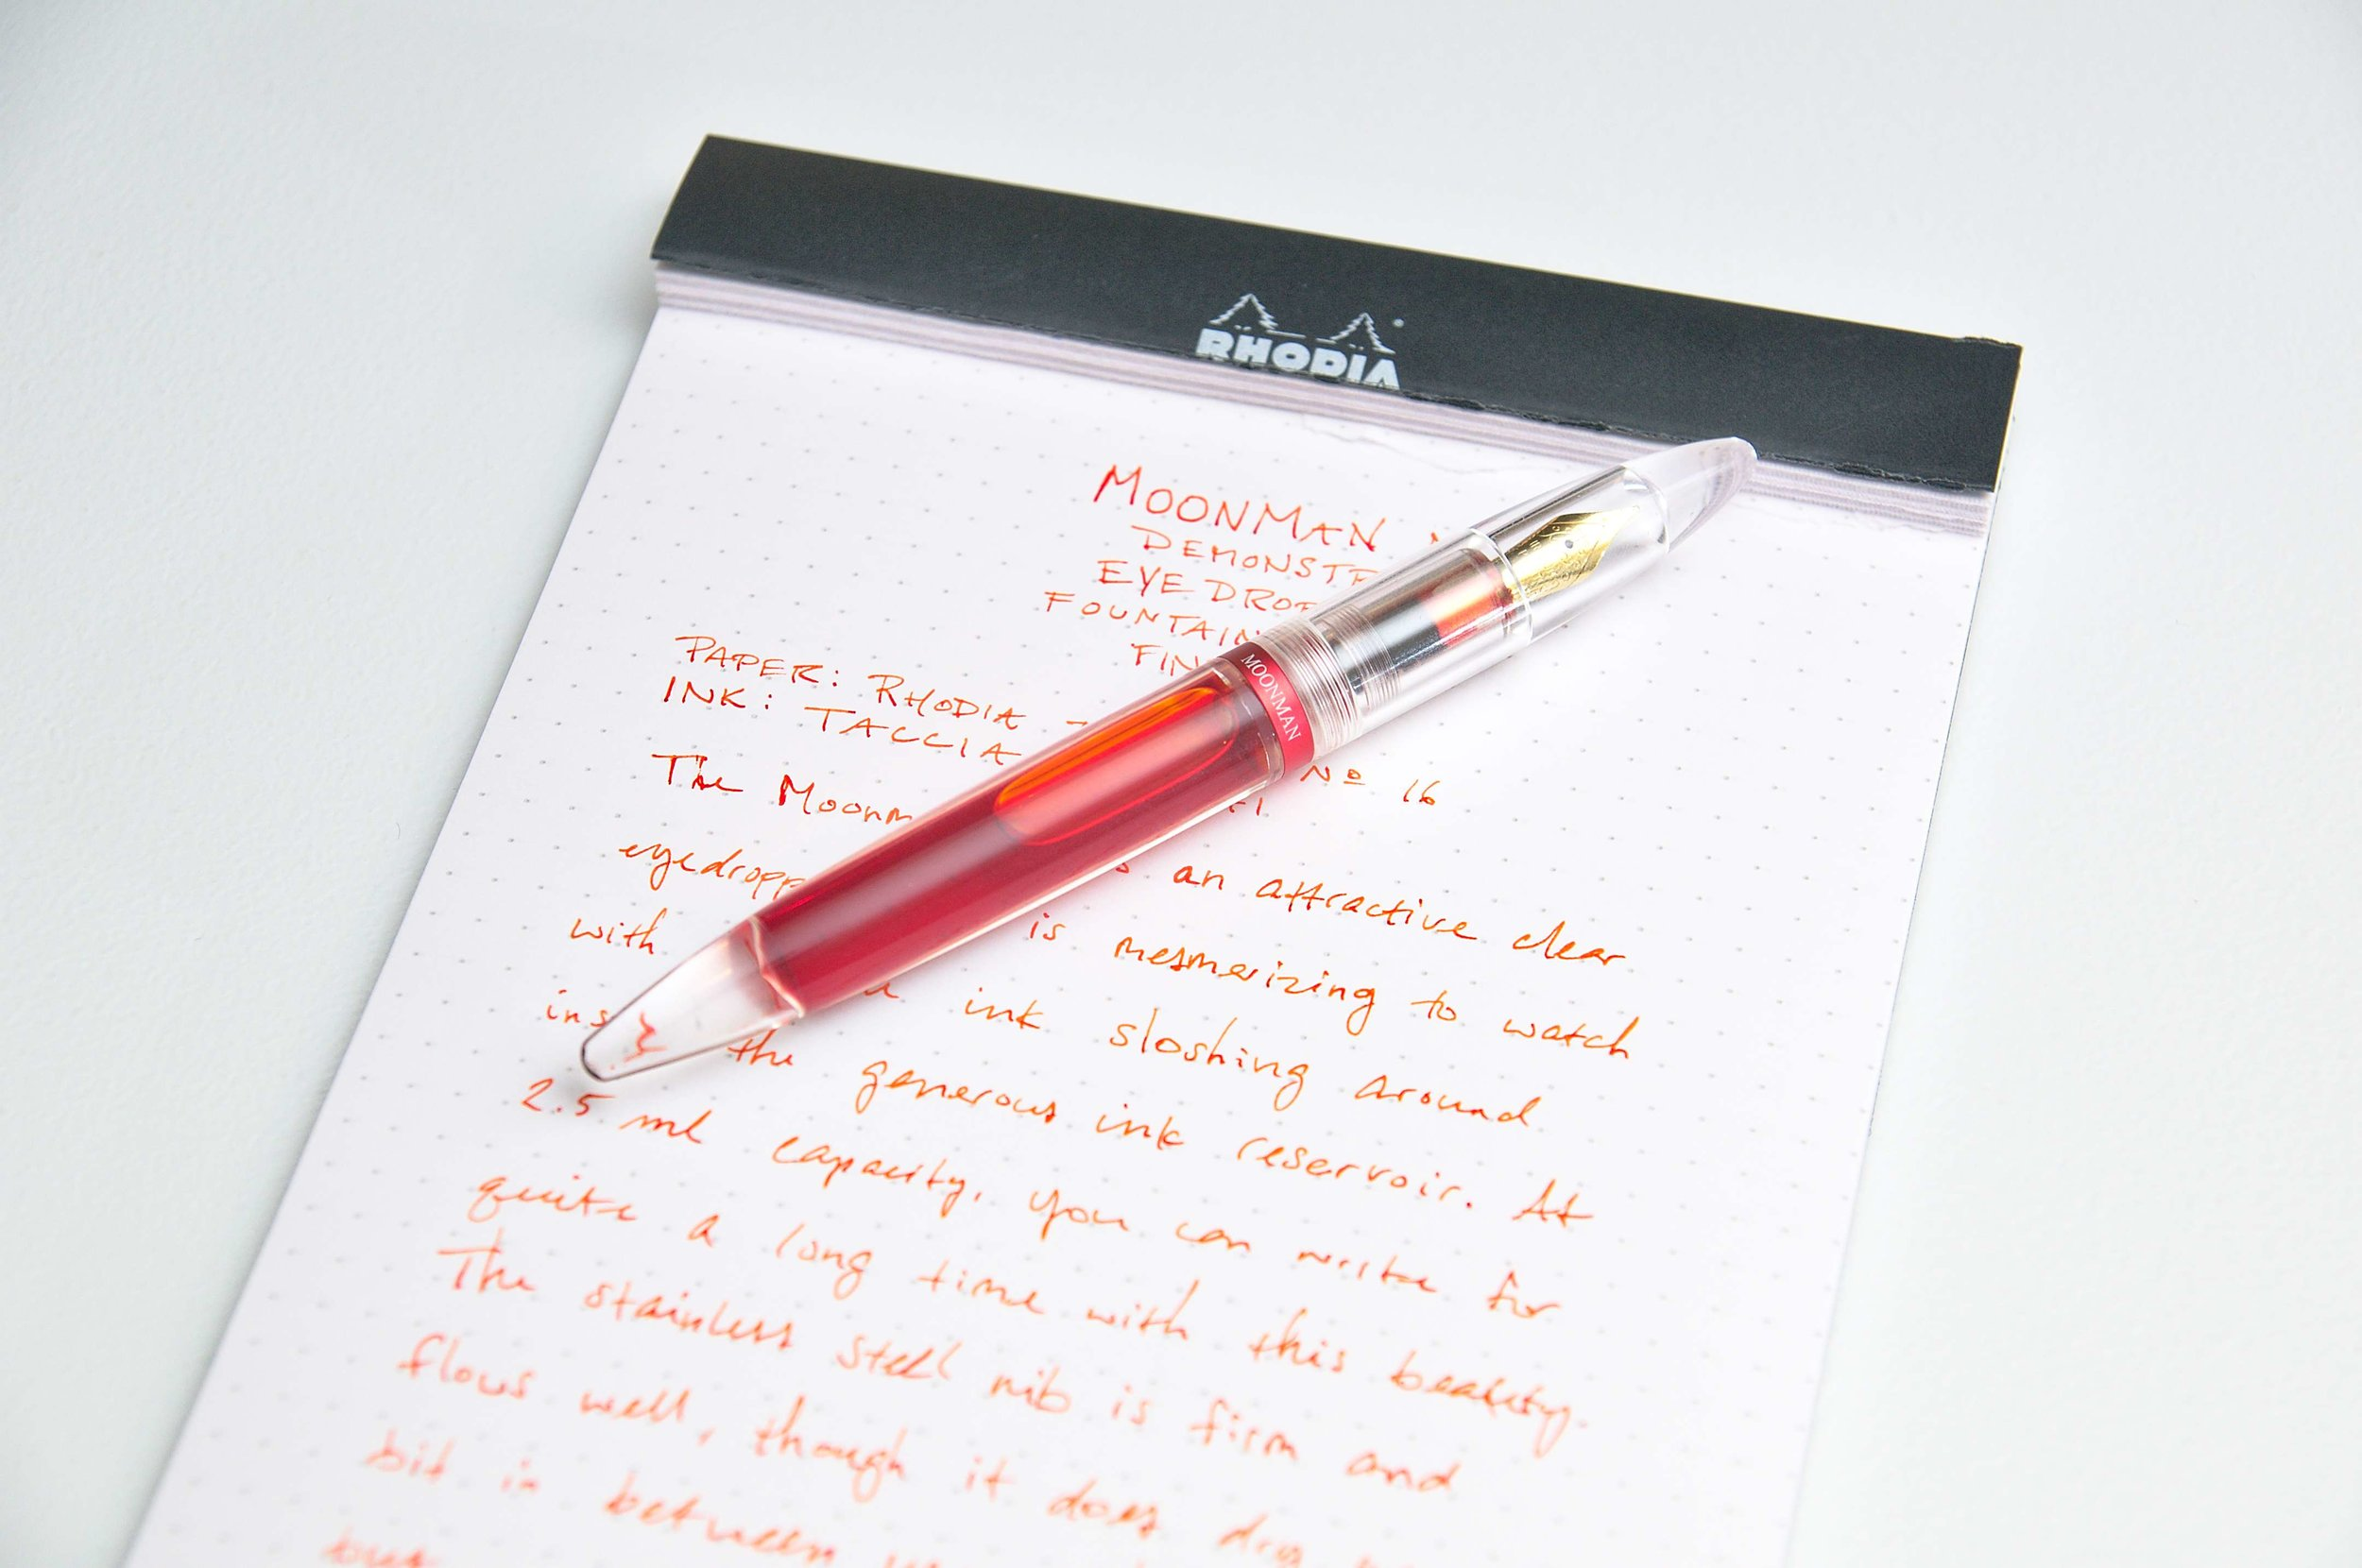 Moonman M2 Fountain Pen Writing